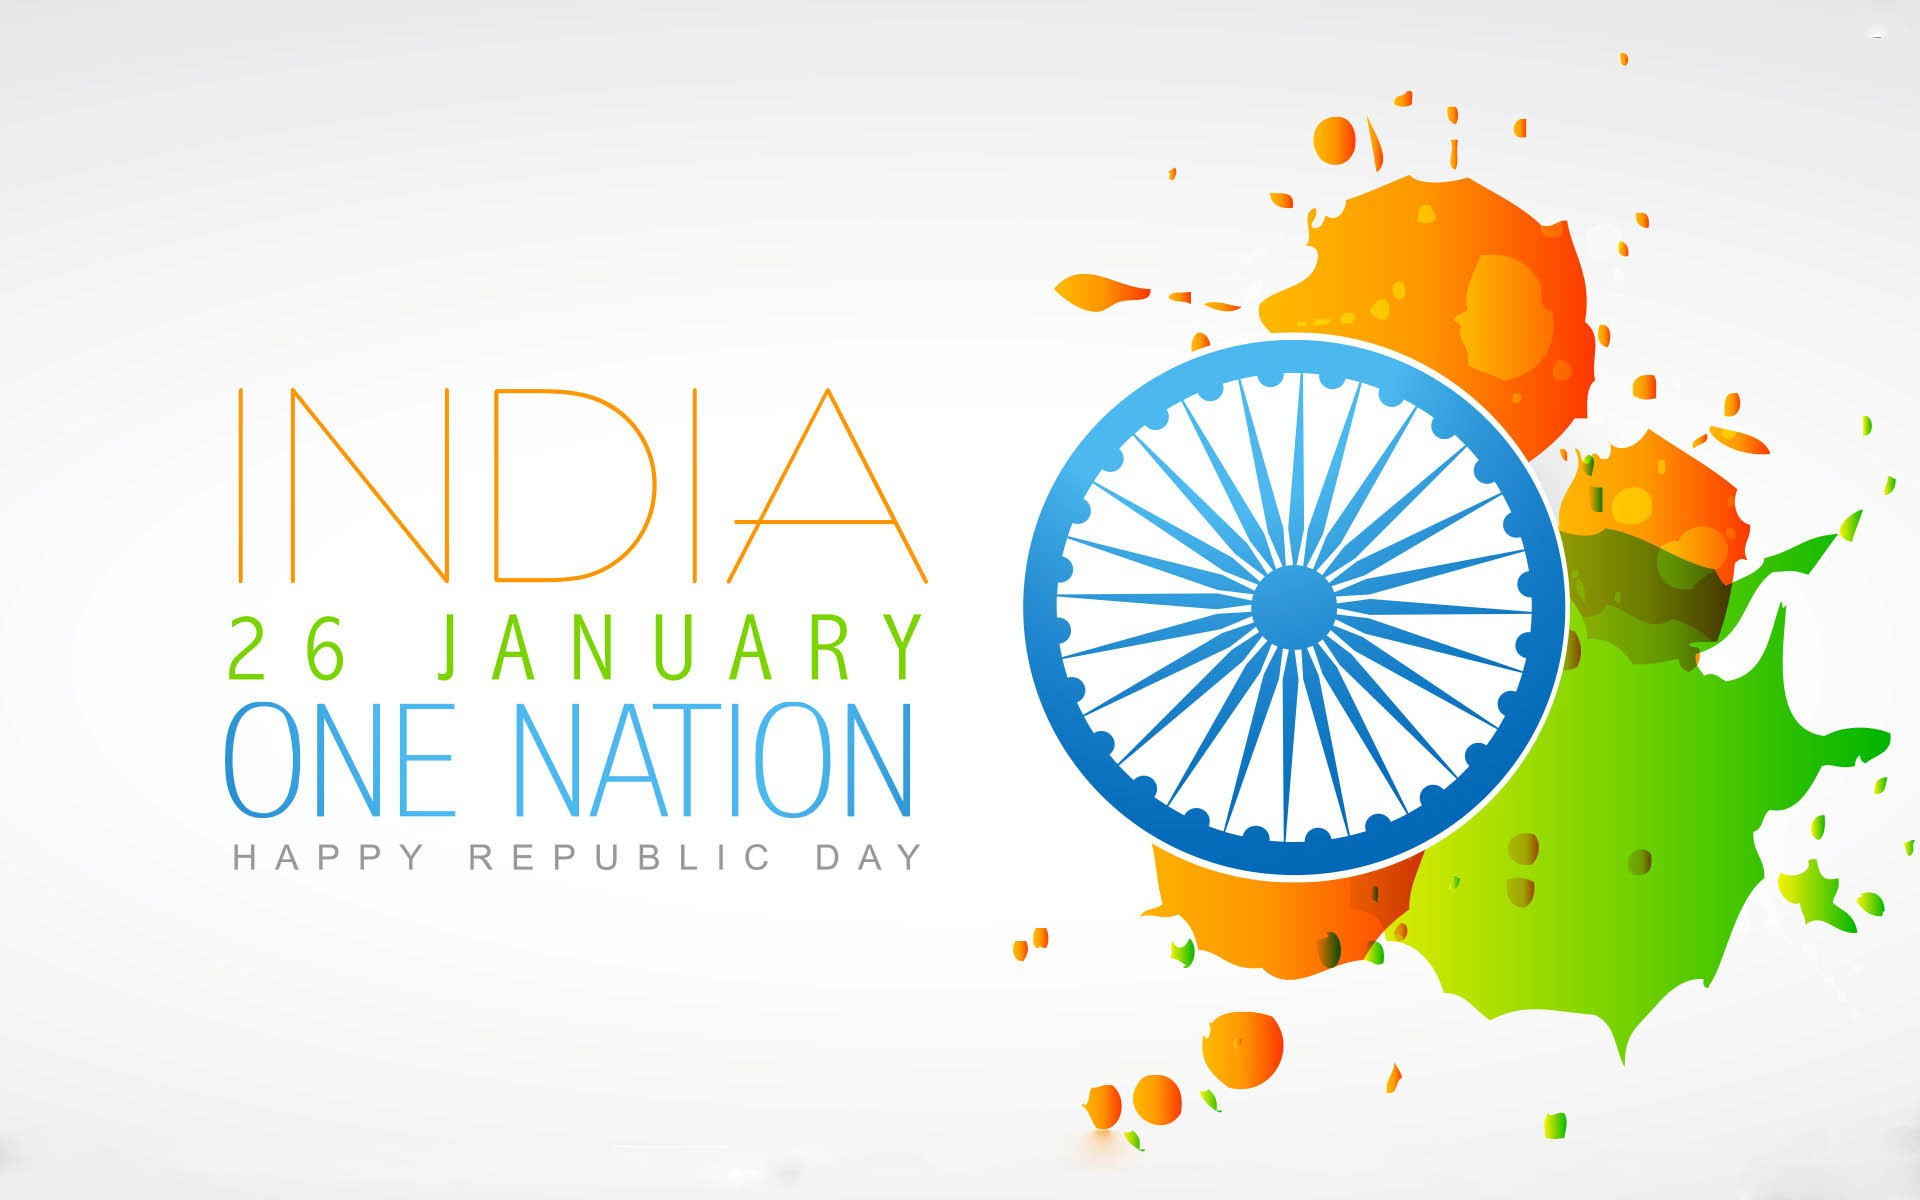 26 January Happy Republic Day One Nation Greetings HD Wallpapers 1920x1200